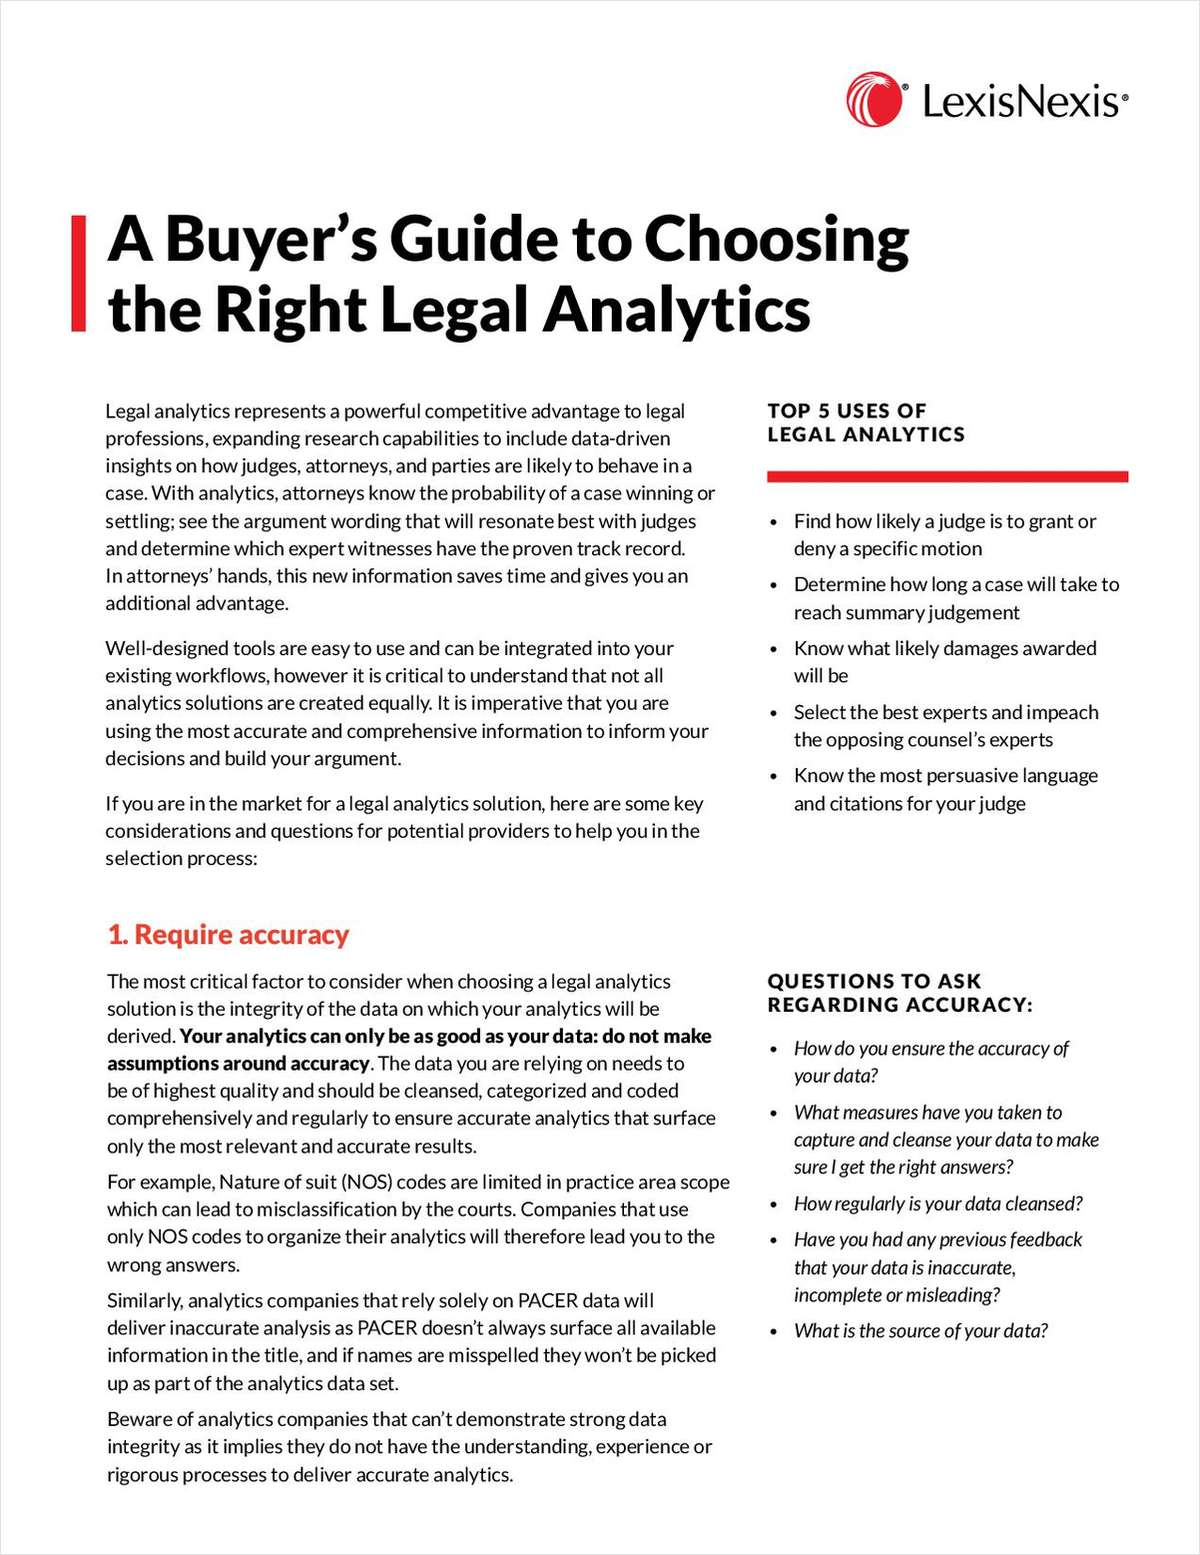 A Buyer's Guide to Choosing the Right Legal Analytics